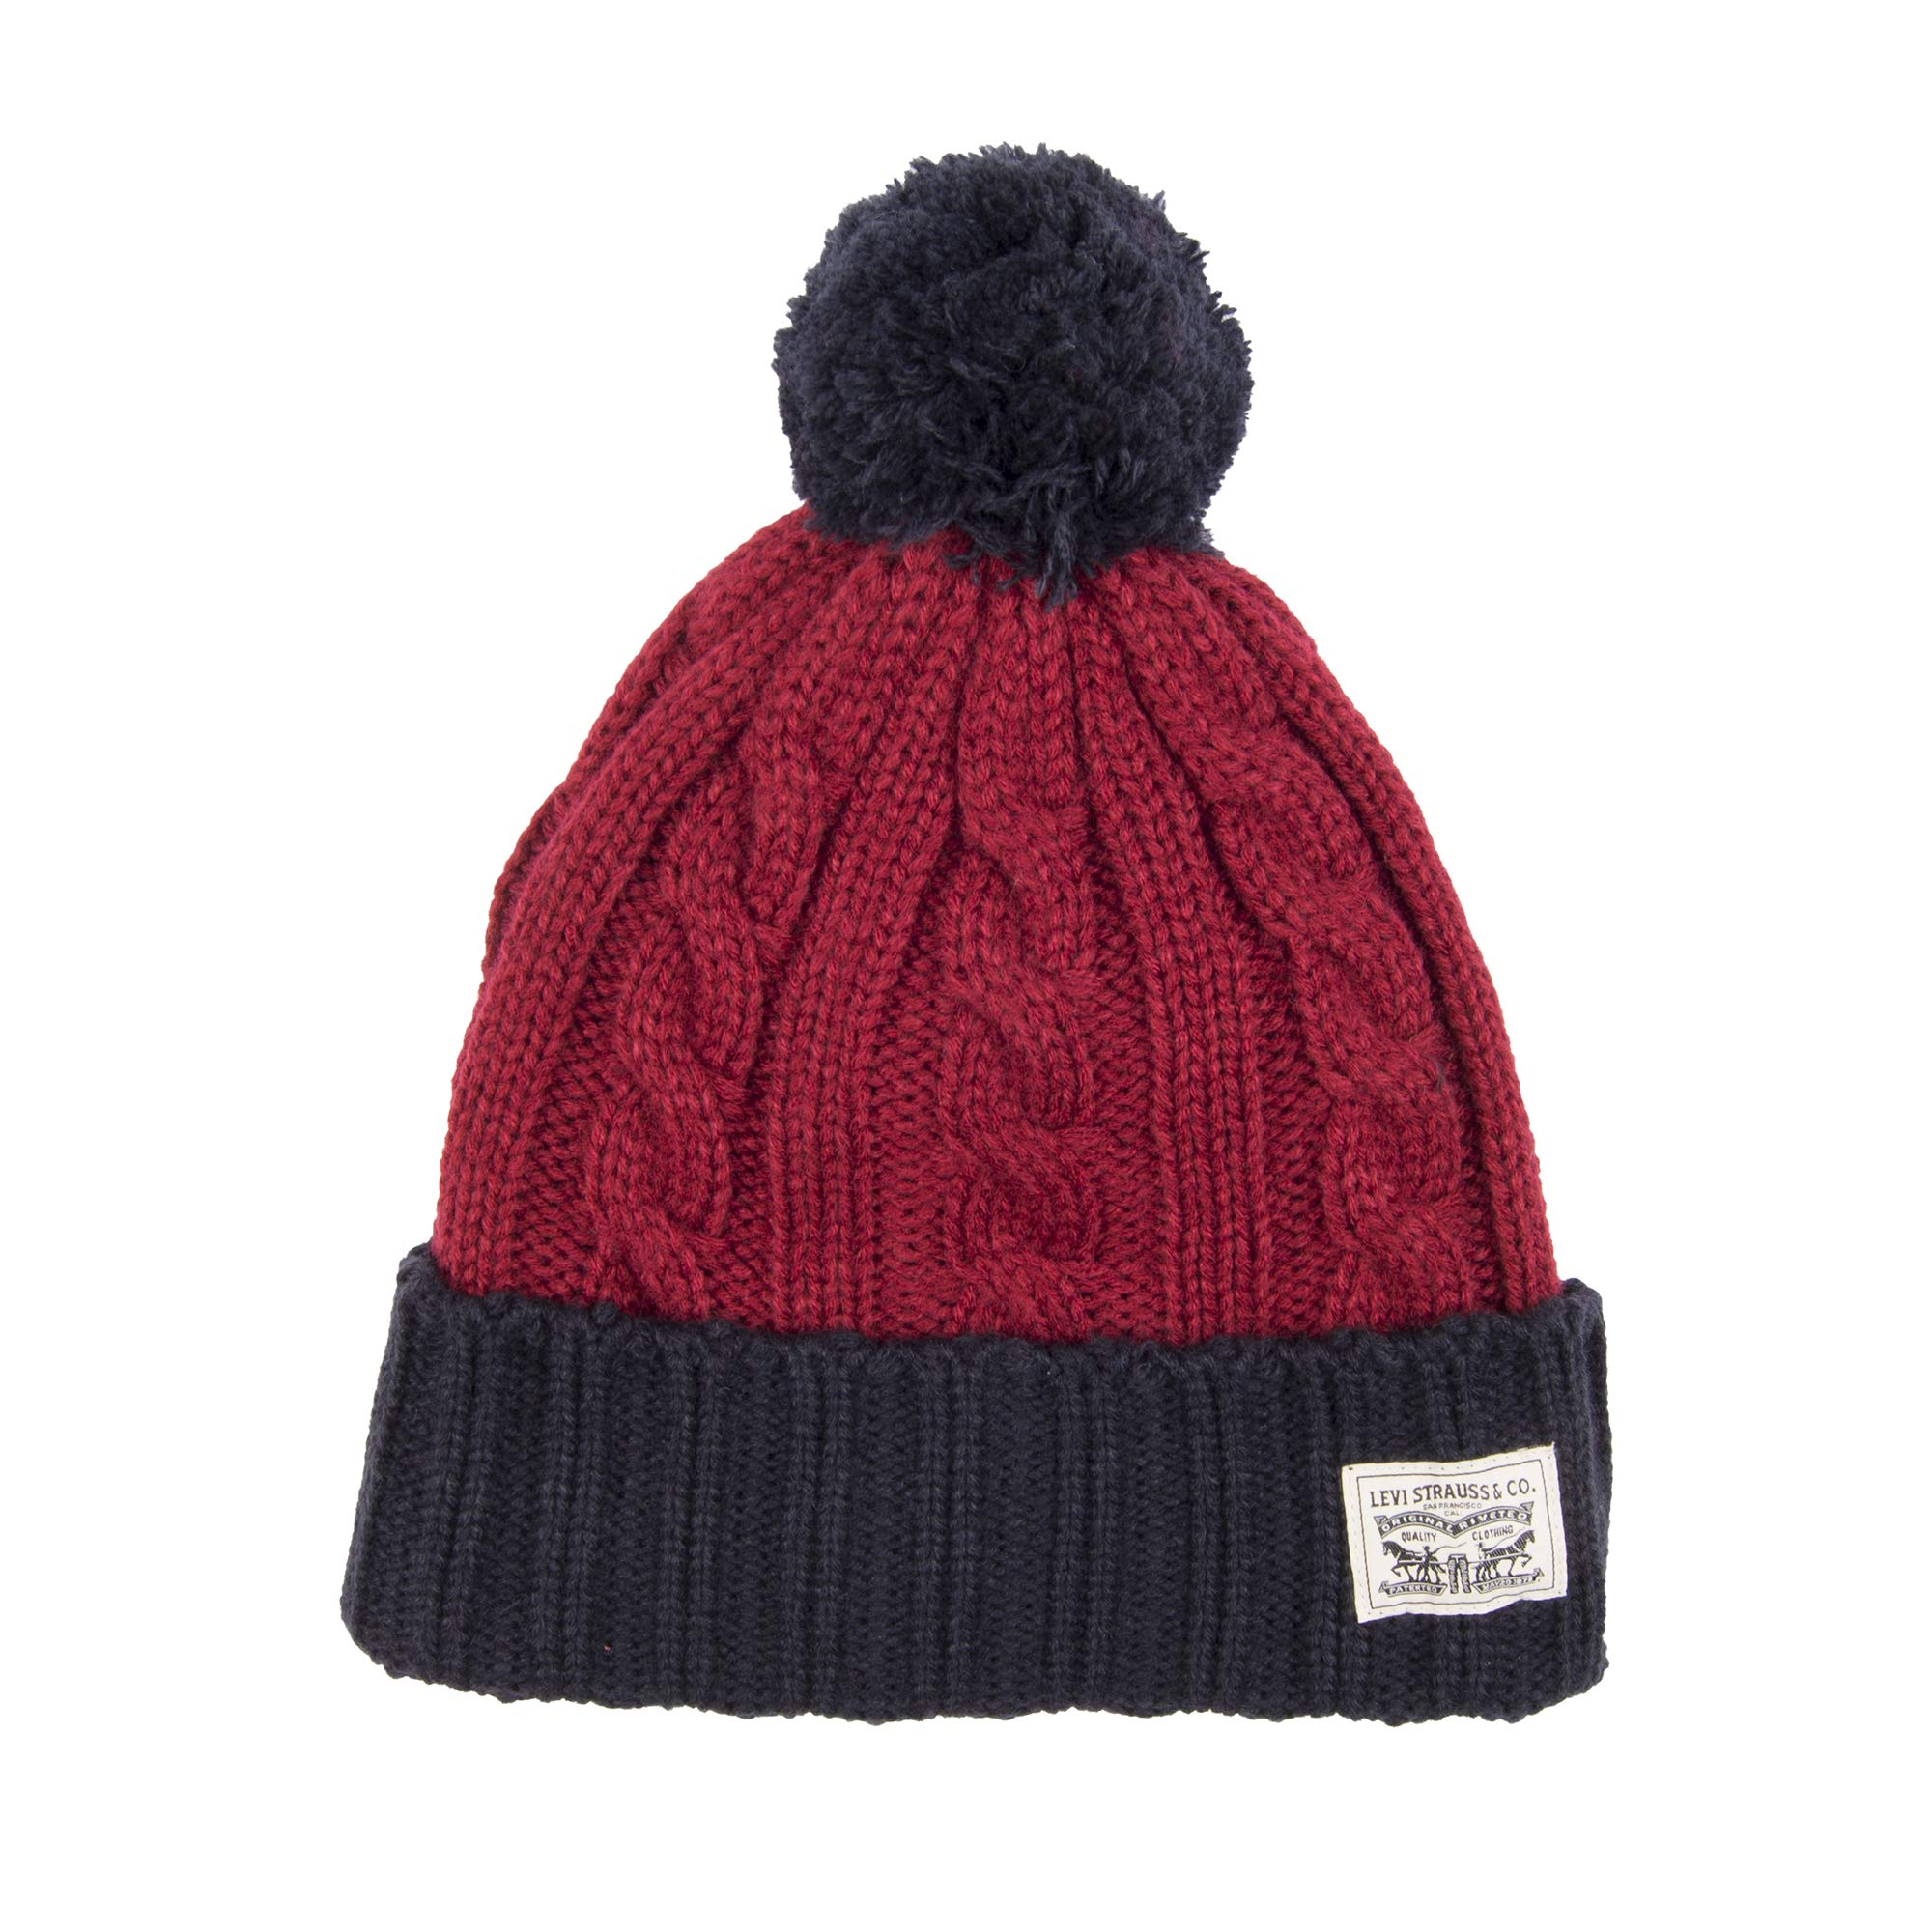 76509770dc29 Galleon - Levi's Men's Pompom Cable Beanie Hat, Red/Navy One Size